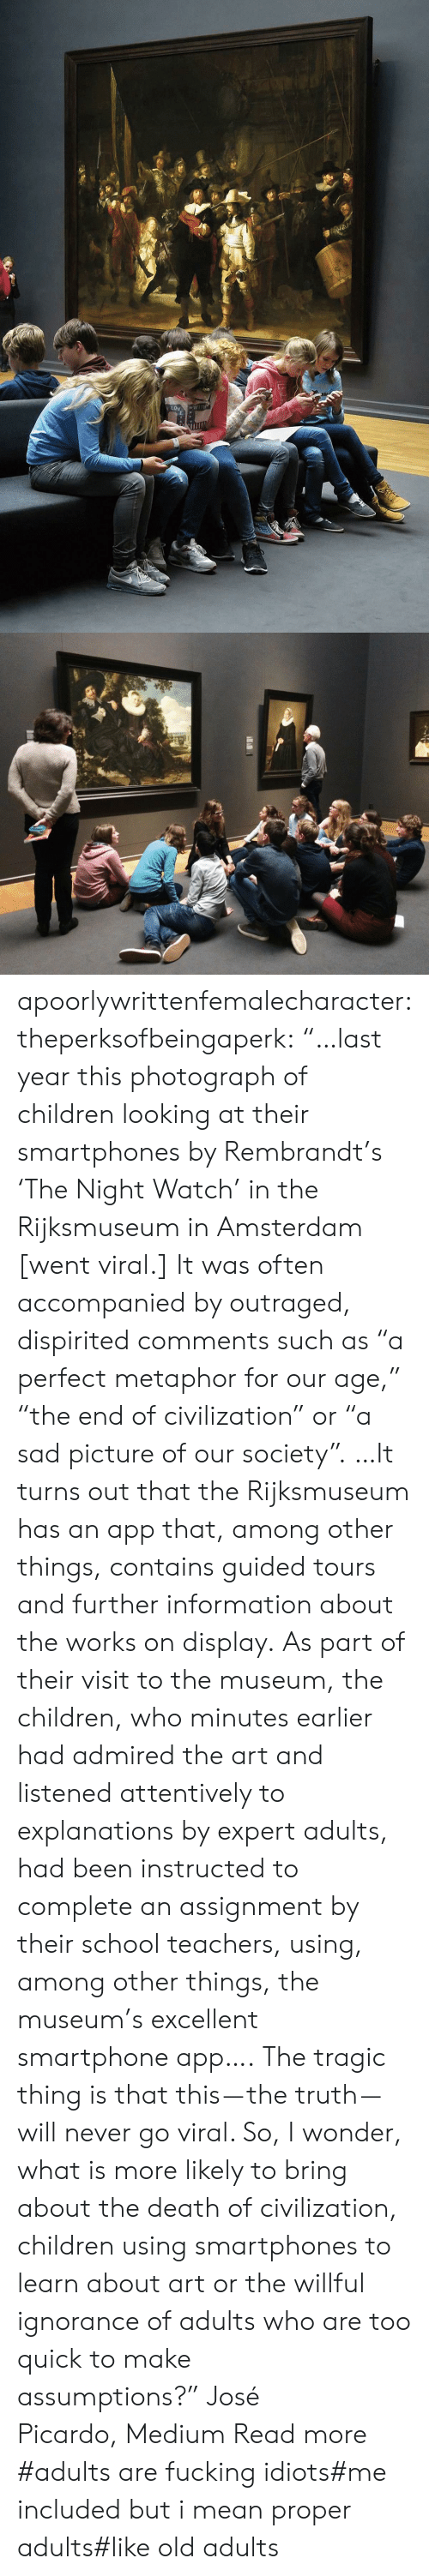 "Amsterdam: apoorlywrittenfemalecharacter: theperksofbeingaperk:  ""…last year this photograph of children looking at their smartphones by Rembrandt's 'The Night Watch' in the Rijksmuseum in Amsterdam [went viral.] It was often accompanied by outraged, dispirited comments such as ""a perfect metaphor for our age,"" ""the end of civilization"" or ""a sad picture of our society"". …It turns out that the Rijksmuseum has an app that, among other things, contains guided tours and further information about the works on display. As part of their visit to the museum, the children, who minutes earlier had admired the art and listened attentively to explanations by expert adults, had been instructed to complete an assignment by their school teachers, using, among other things, the museum's excellent smartphone app….   The tragic thing is that this — the truth — will never go viral. So, I wonder, what is more likely to bring about the death of civilization, children using smartphones to learn about art or the willful ignorance of adults who are too quick to make assumptions?"" José Picardo, Medium Read more    #adults are fucking idiots#me included but i mean proper adults#like old adults"